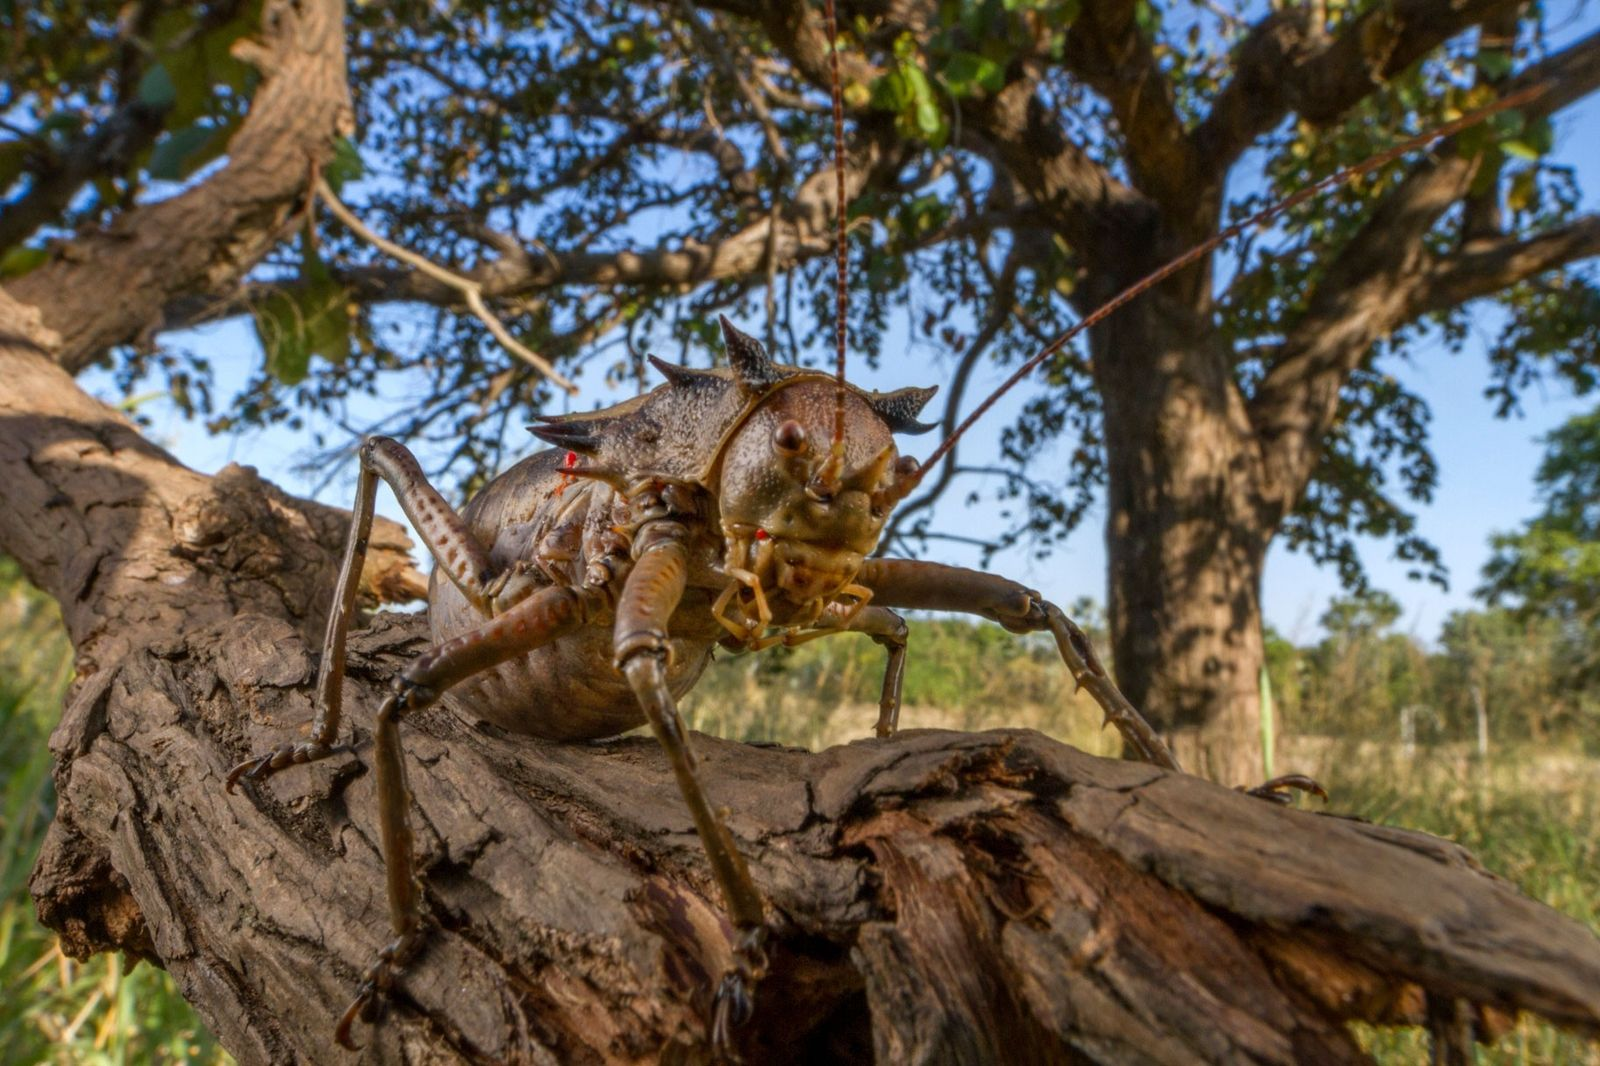 Blood-squirting insects and more tiny creatures flourish in African park